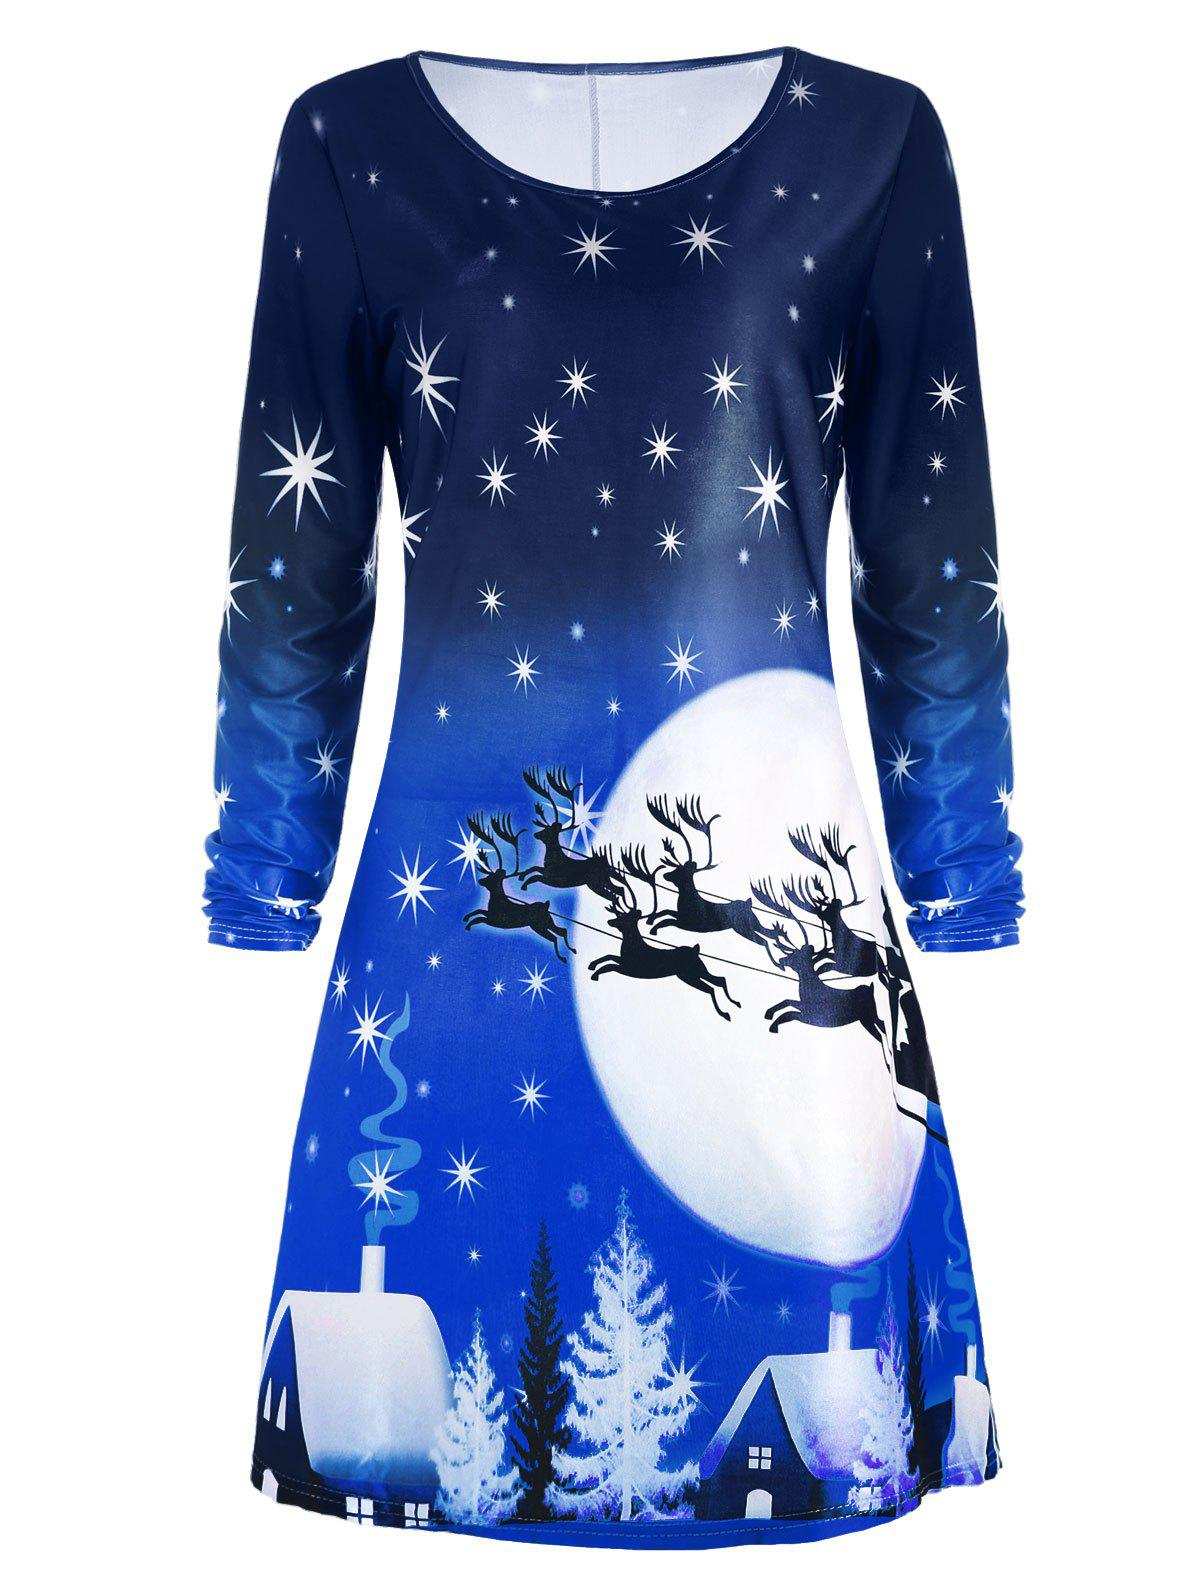 Christmas Deer Long Sleeve Tee Skater DressWOMEN<br><br>Size: 2XL; Color: BLUE; Style: Casual; Material: Polyester; Silhouette: A-Line; Dresses Length: Knee-Length; Neckline: Round Collar; Sleeve Length: Long Sleeves; Pattern Type: Animal,Character,Print,Star; With Belt: No; Season: Fall; Weight: 0.2300kg; Package Contents: 1 x Dress; Occasion: Casual;